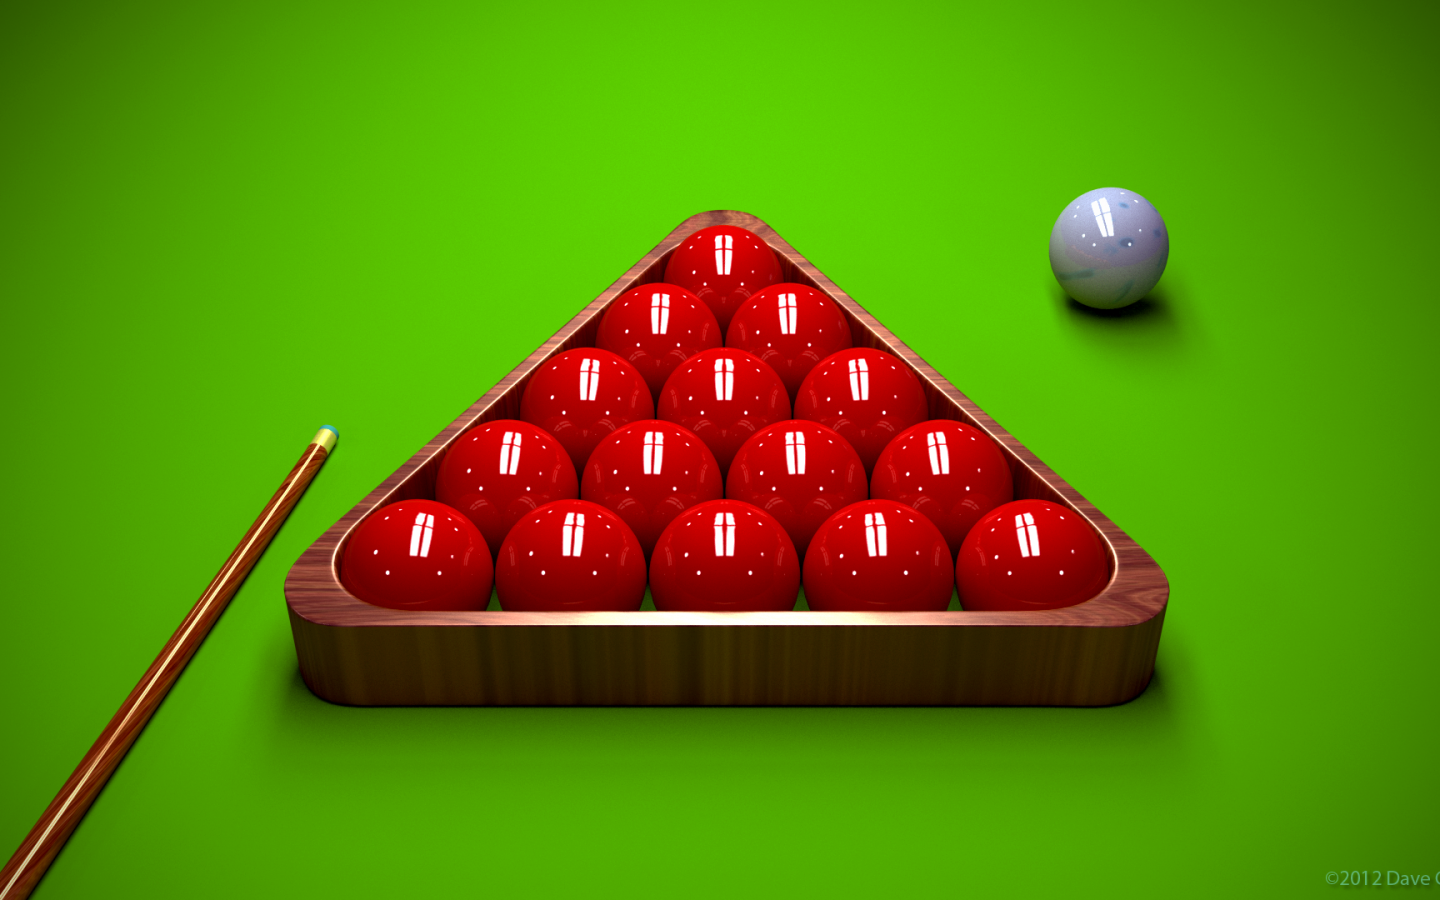 1440x900 - Snooker Wallpapers 29